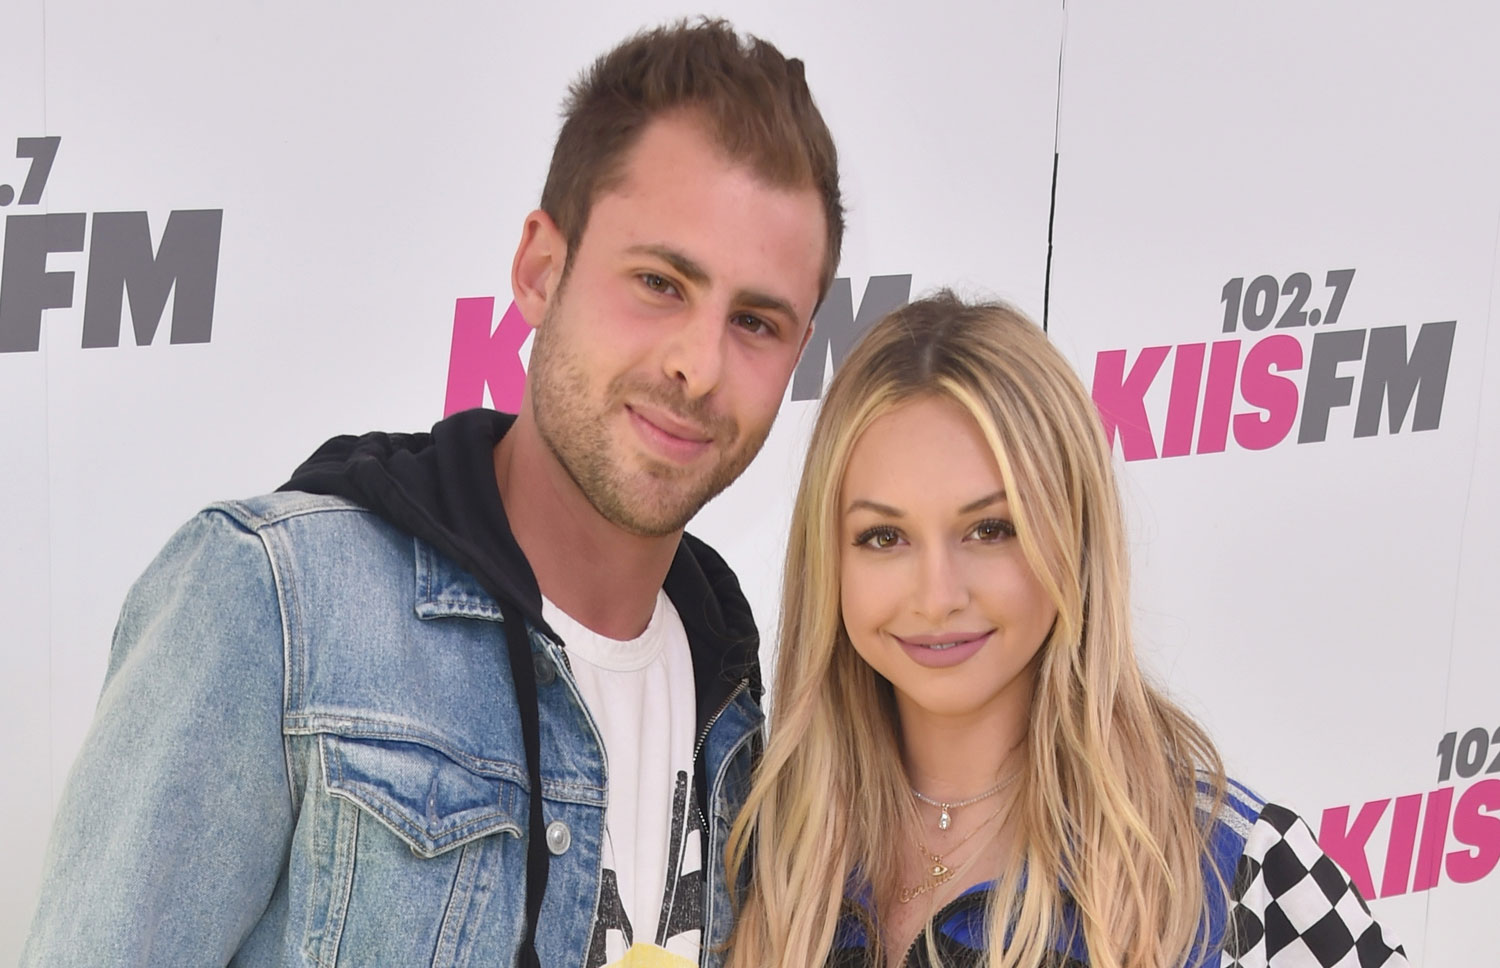 Corinne Olympioss Boyfriend Gives His Take on the Bachelor in Paradise Incident pictures